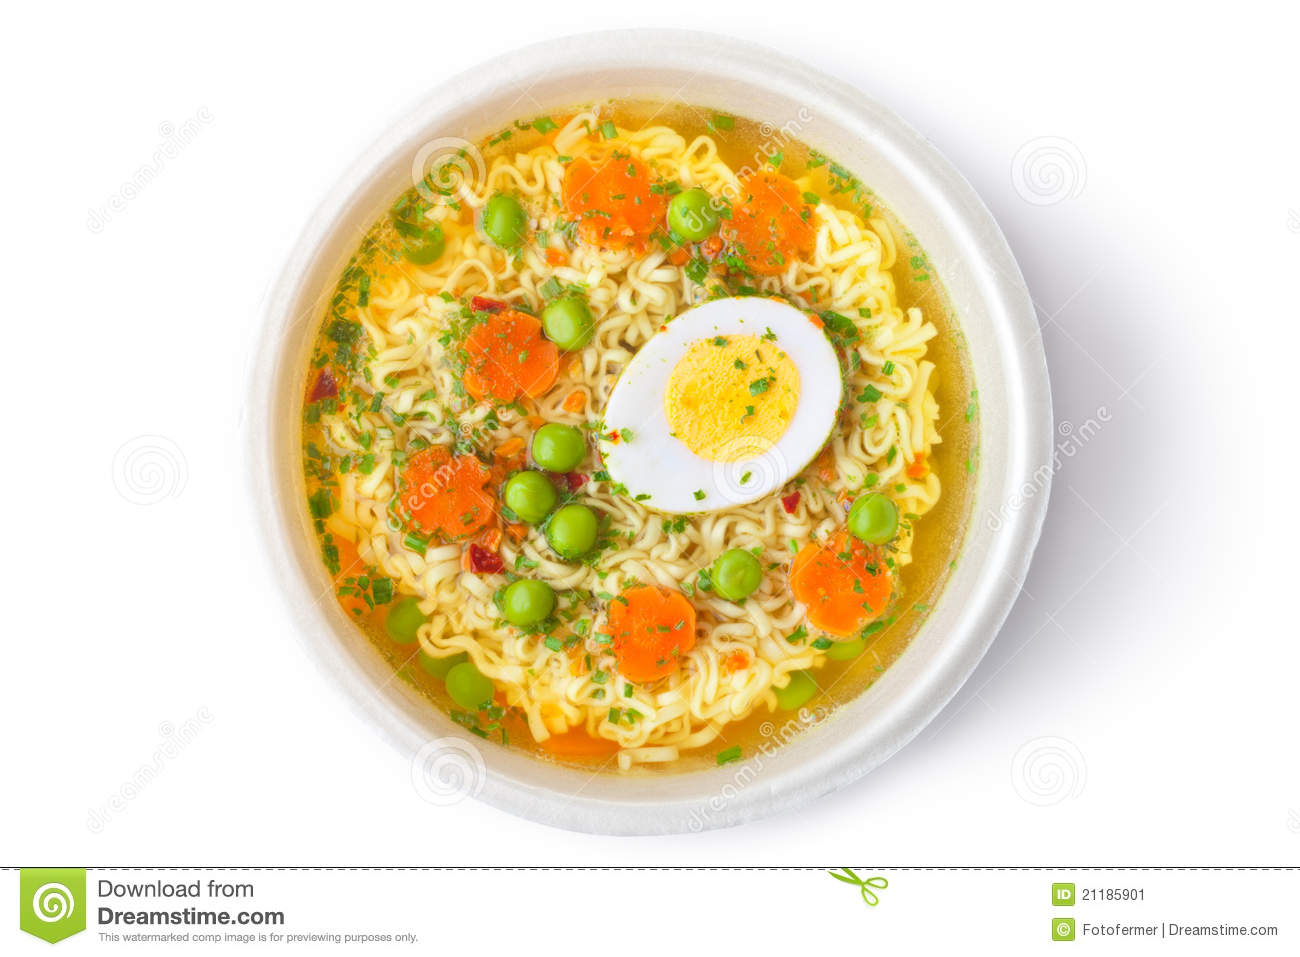 Cup Of Instant Noodles With Vegetables Stock Image   Image  21185901